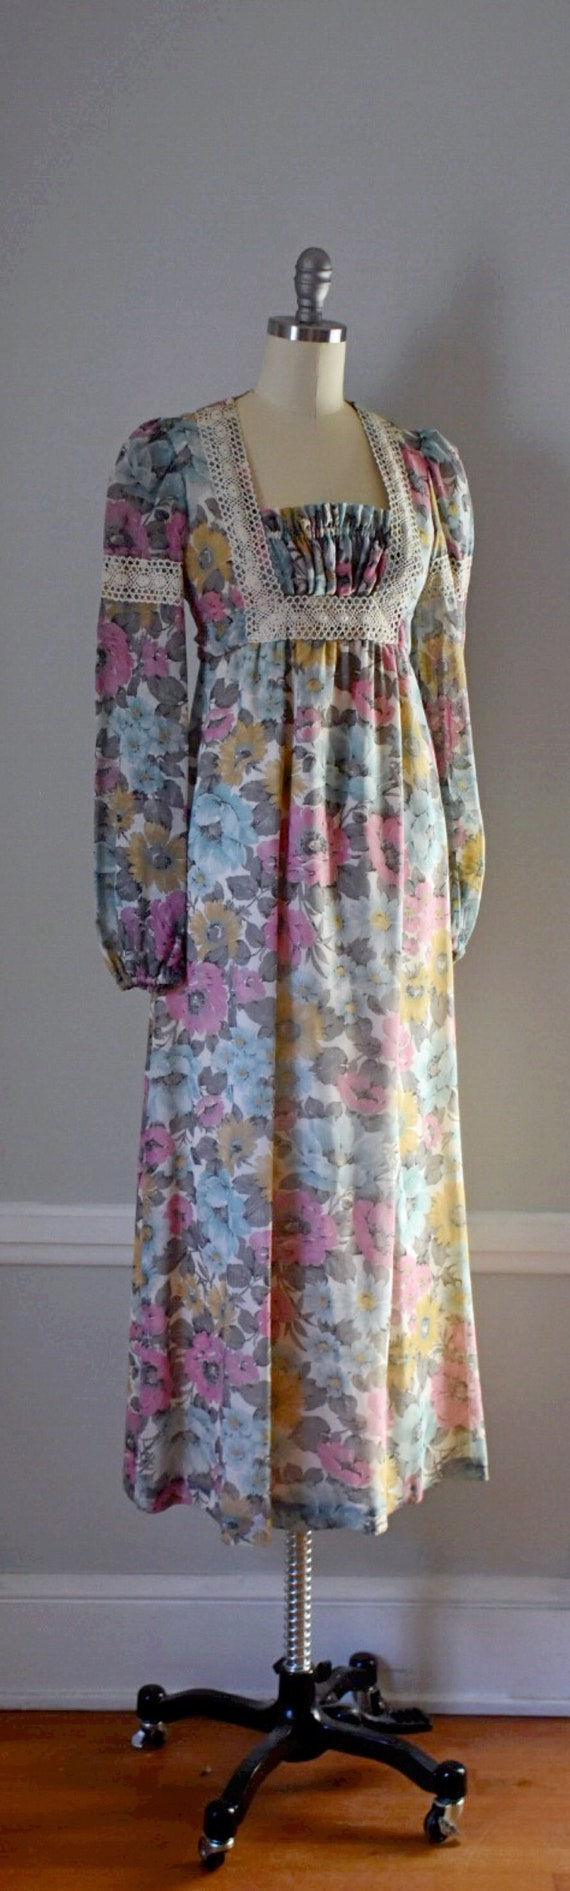 Vintage 70s Prairie Dress - image 5